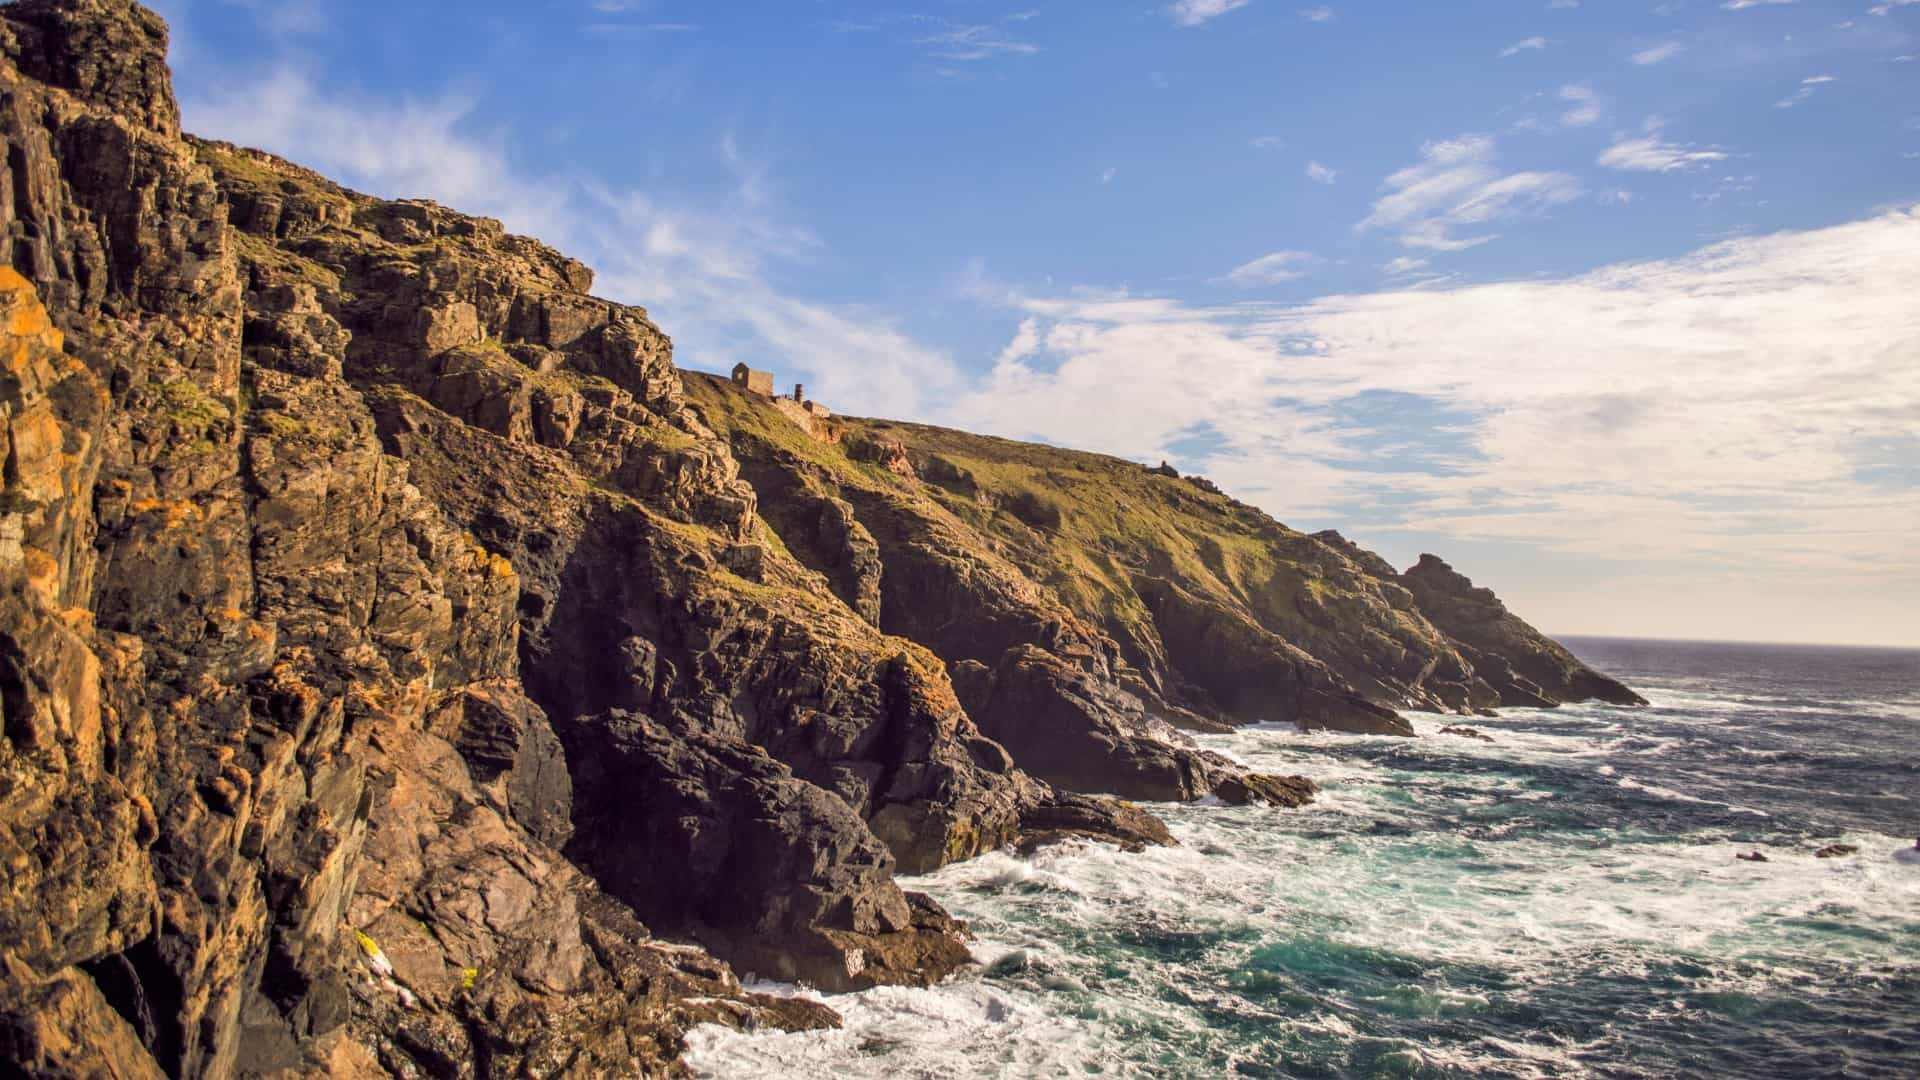 Dark, killas slate cliffs from Cape Cornwall to Pendeen contrast with the golden granite of west Cornwall.